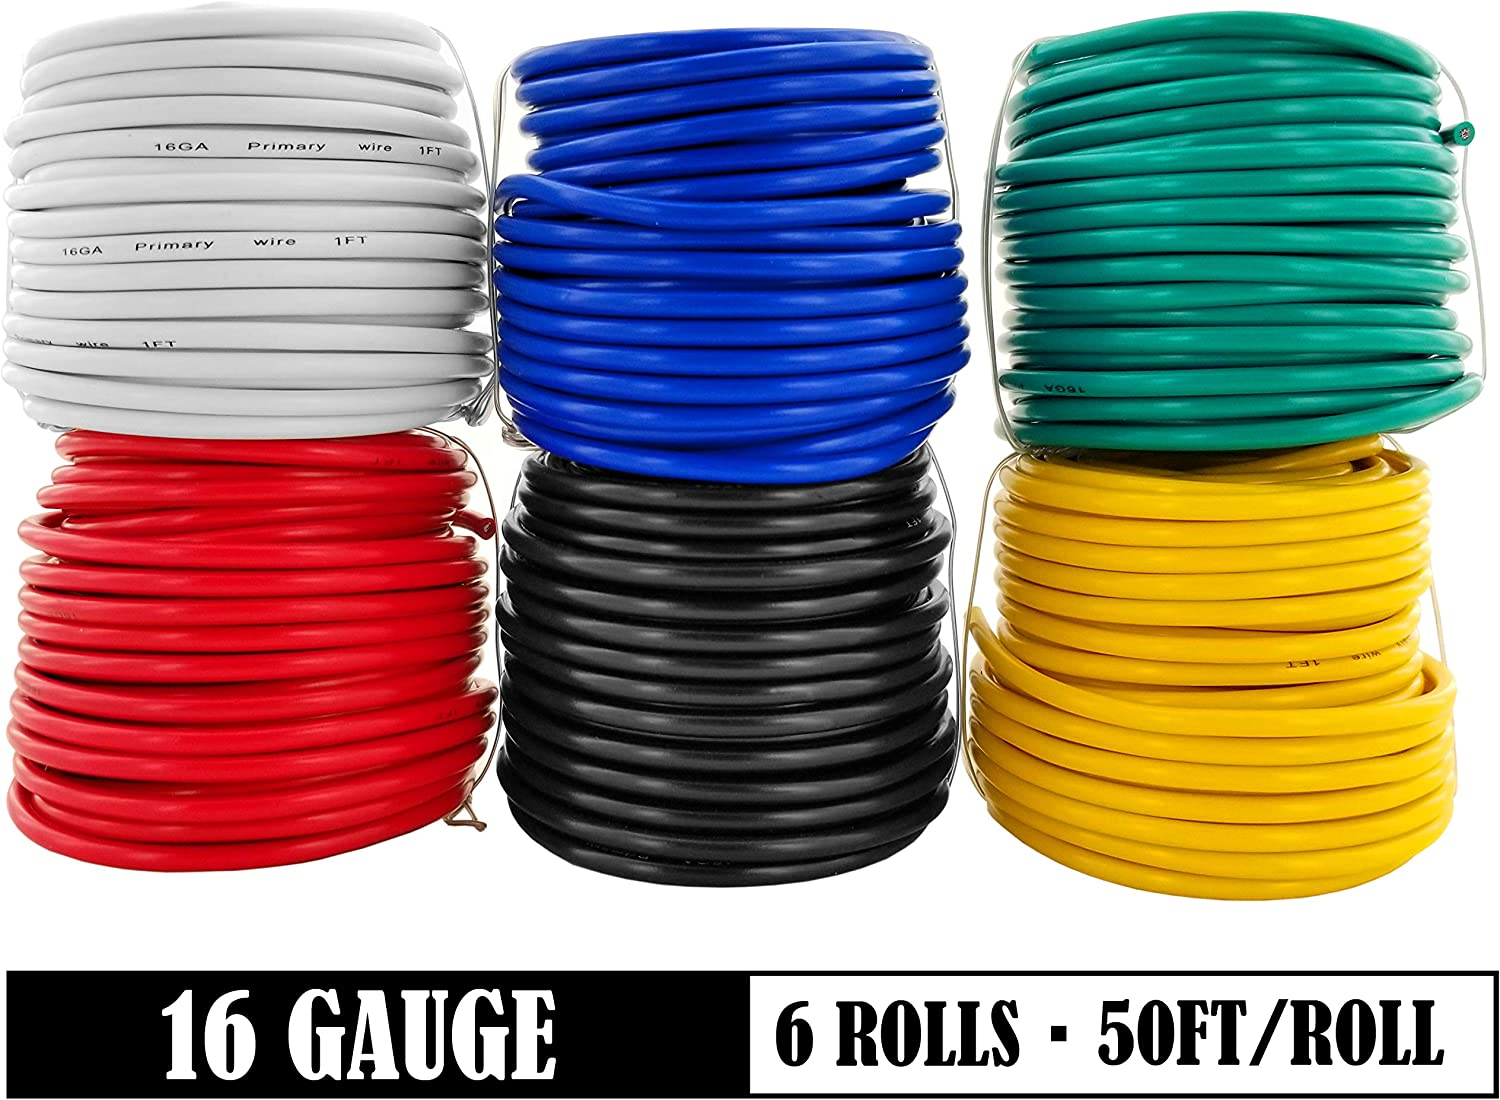 16 Gauge 6 Color Combo 50 Feet Roll (300 ft total) Copper Clad Aluminum Low Voltage Automotive Primary Harness Wire for Car Stereo Amplifier Remote Trailer Hookup Wiring (Also in 14 & 18 Guage): Automotive